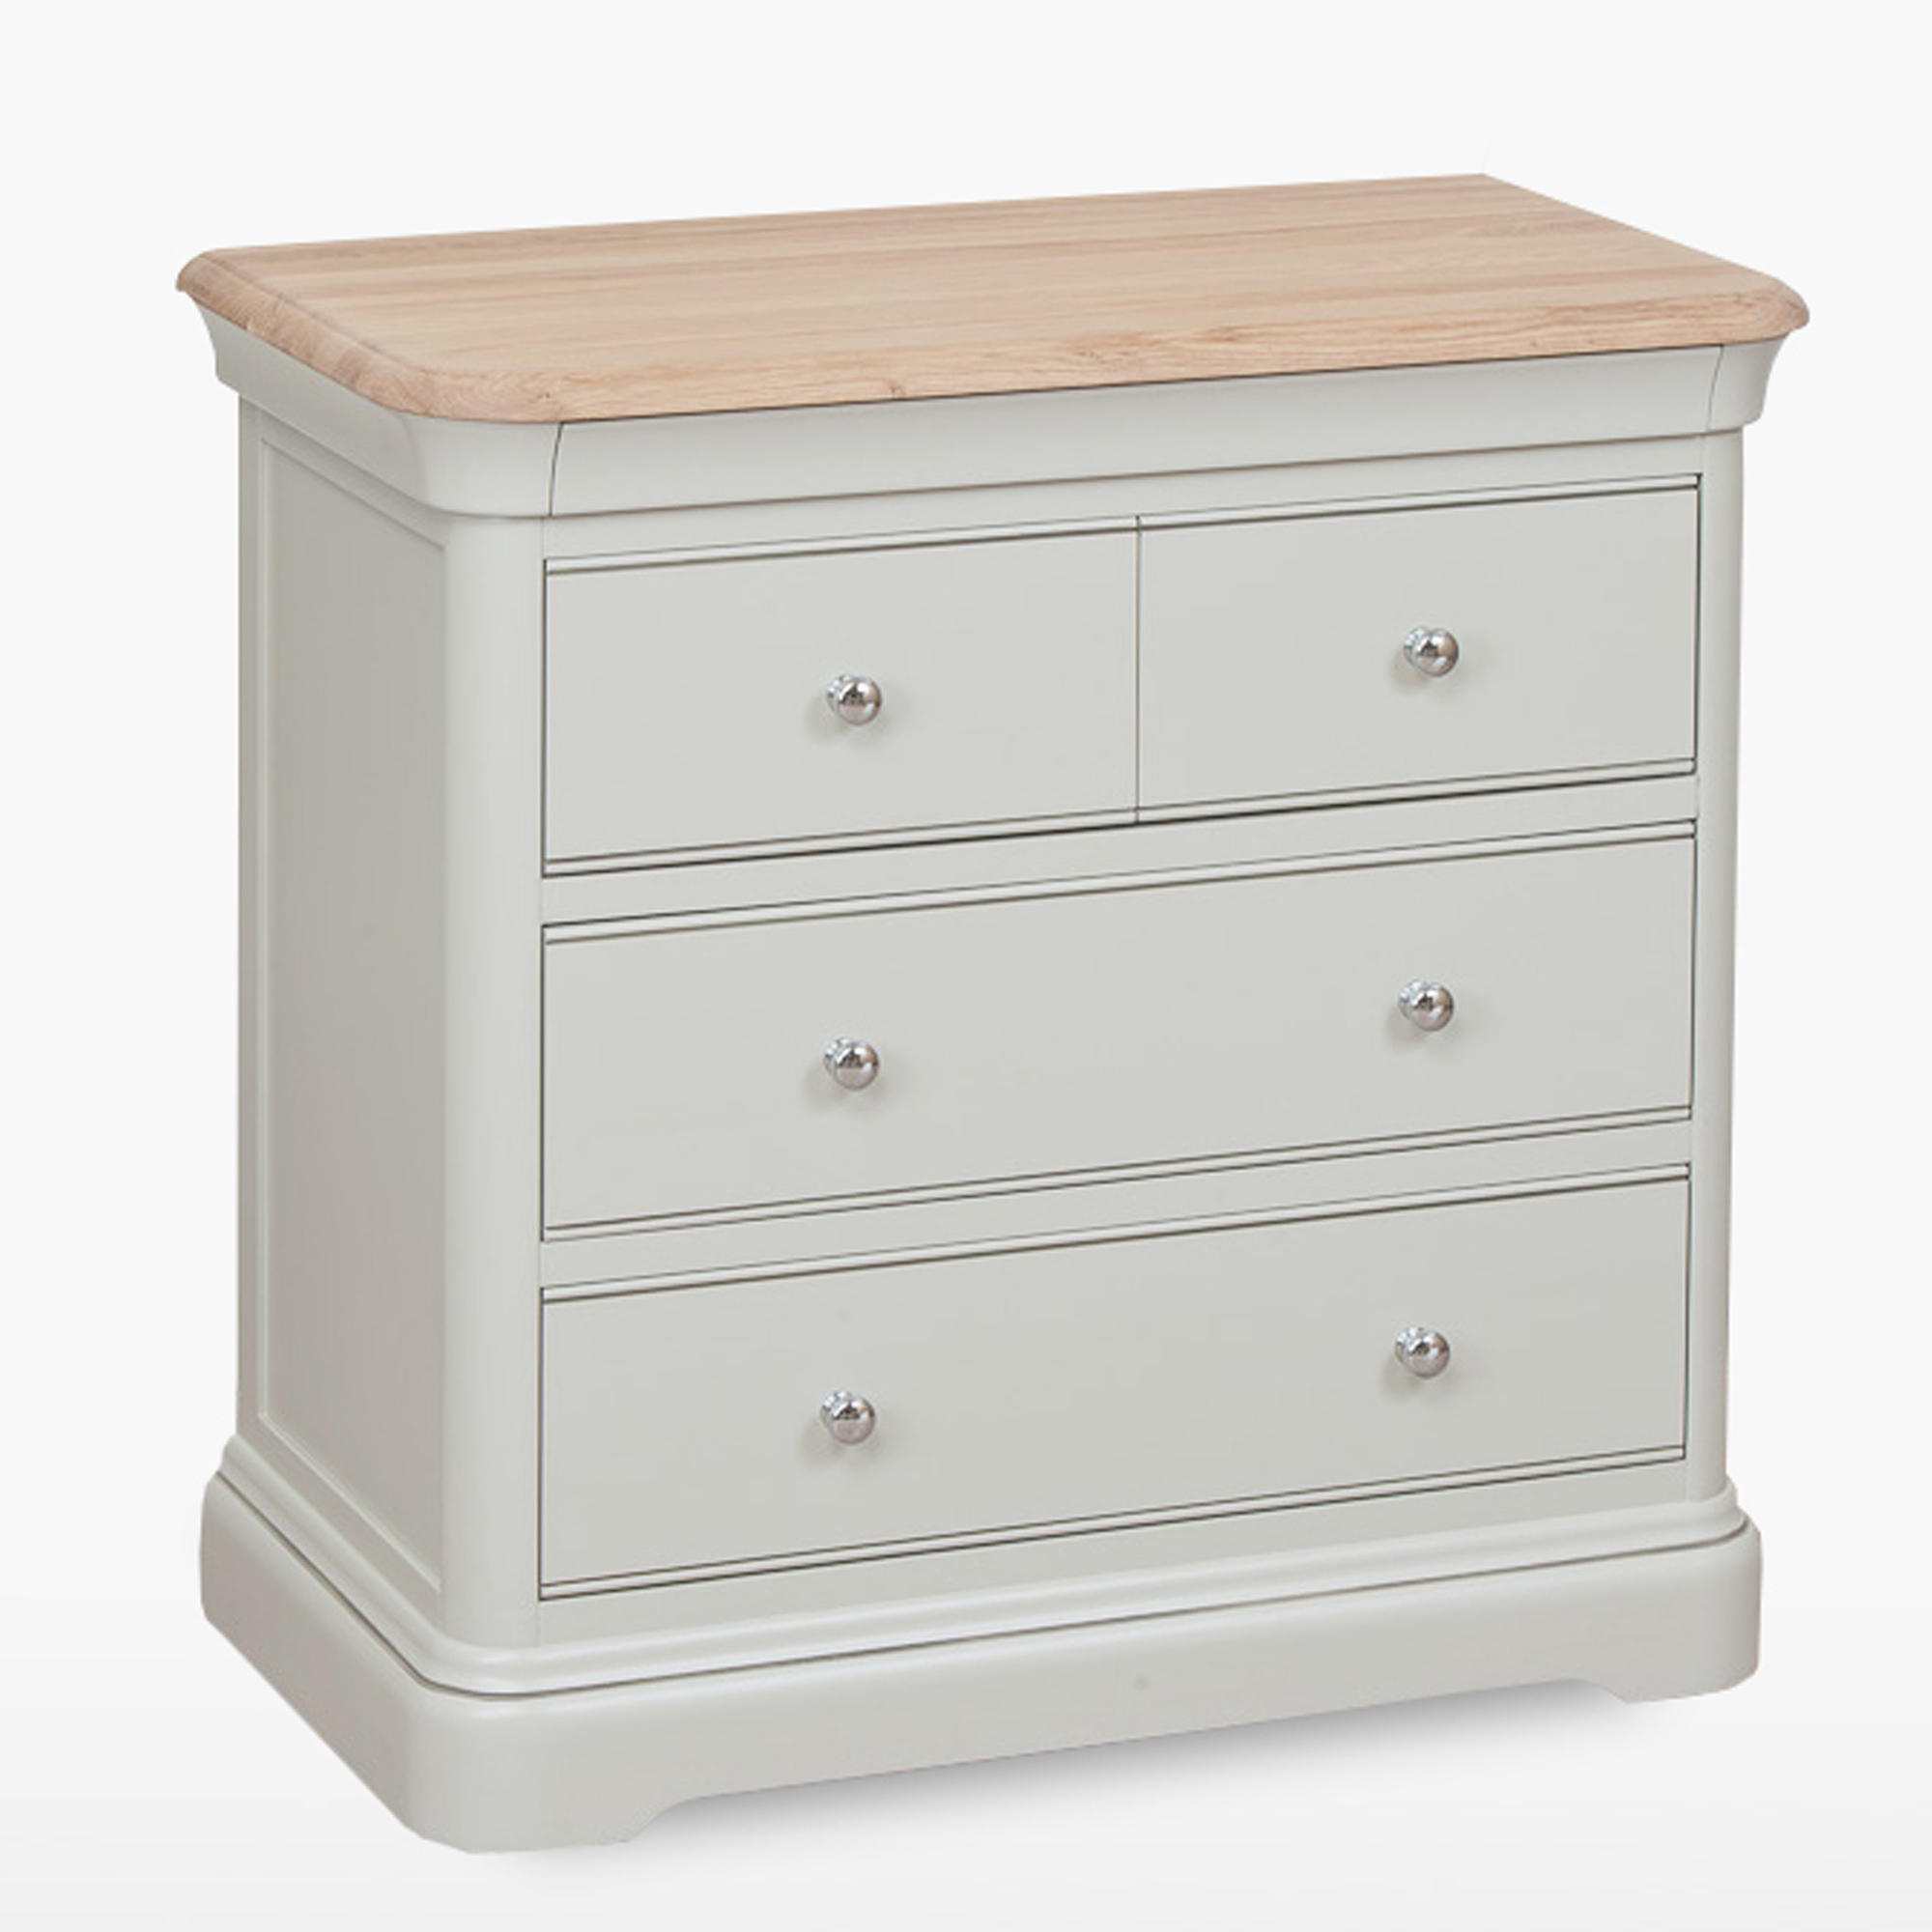 Cromer Four Drawer Chest